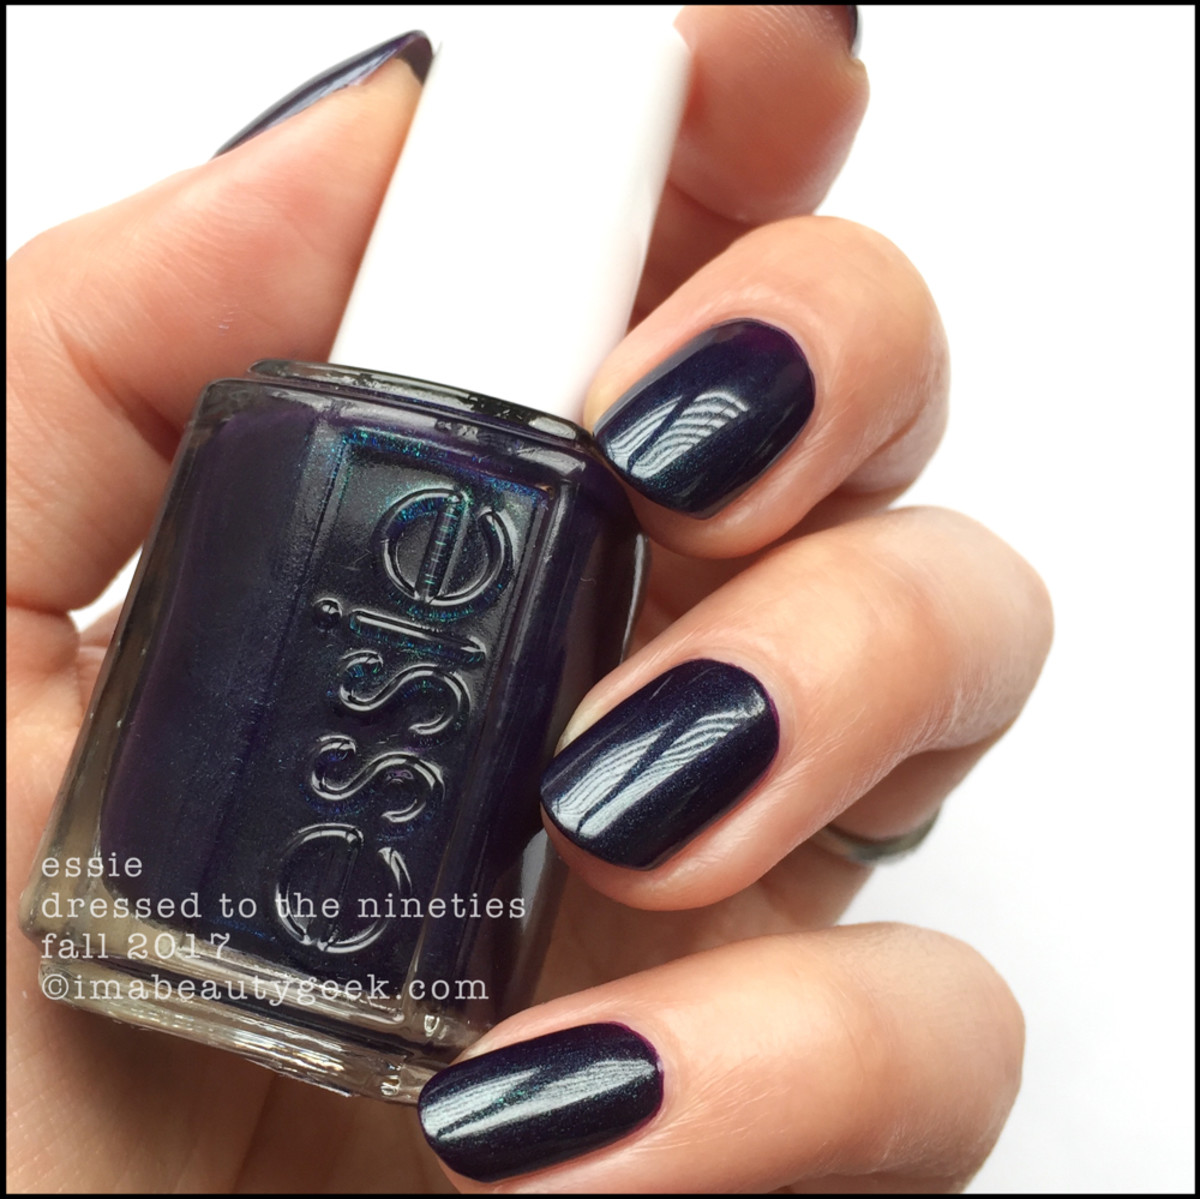 Essie Dressed to the Nineties - Essie Fall 2017 Collection Swatches Review